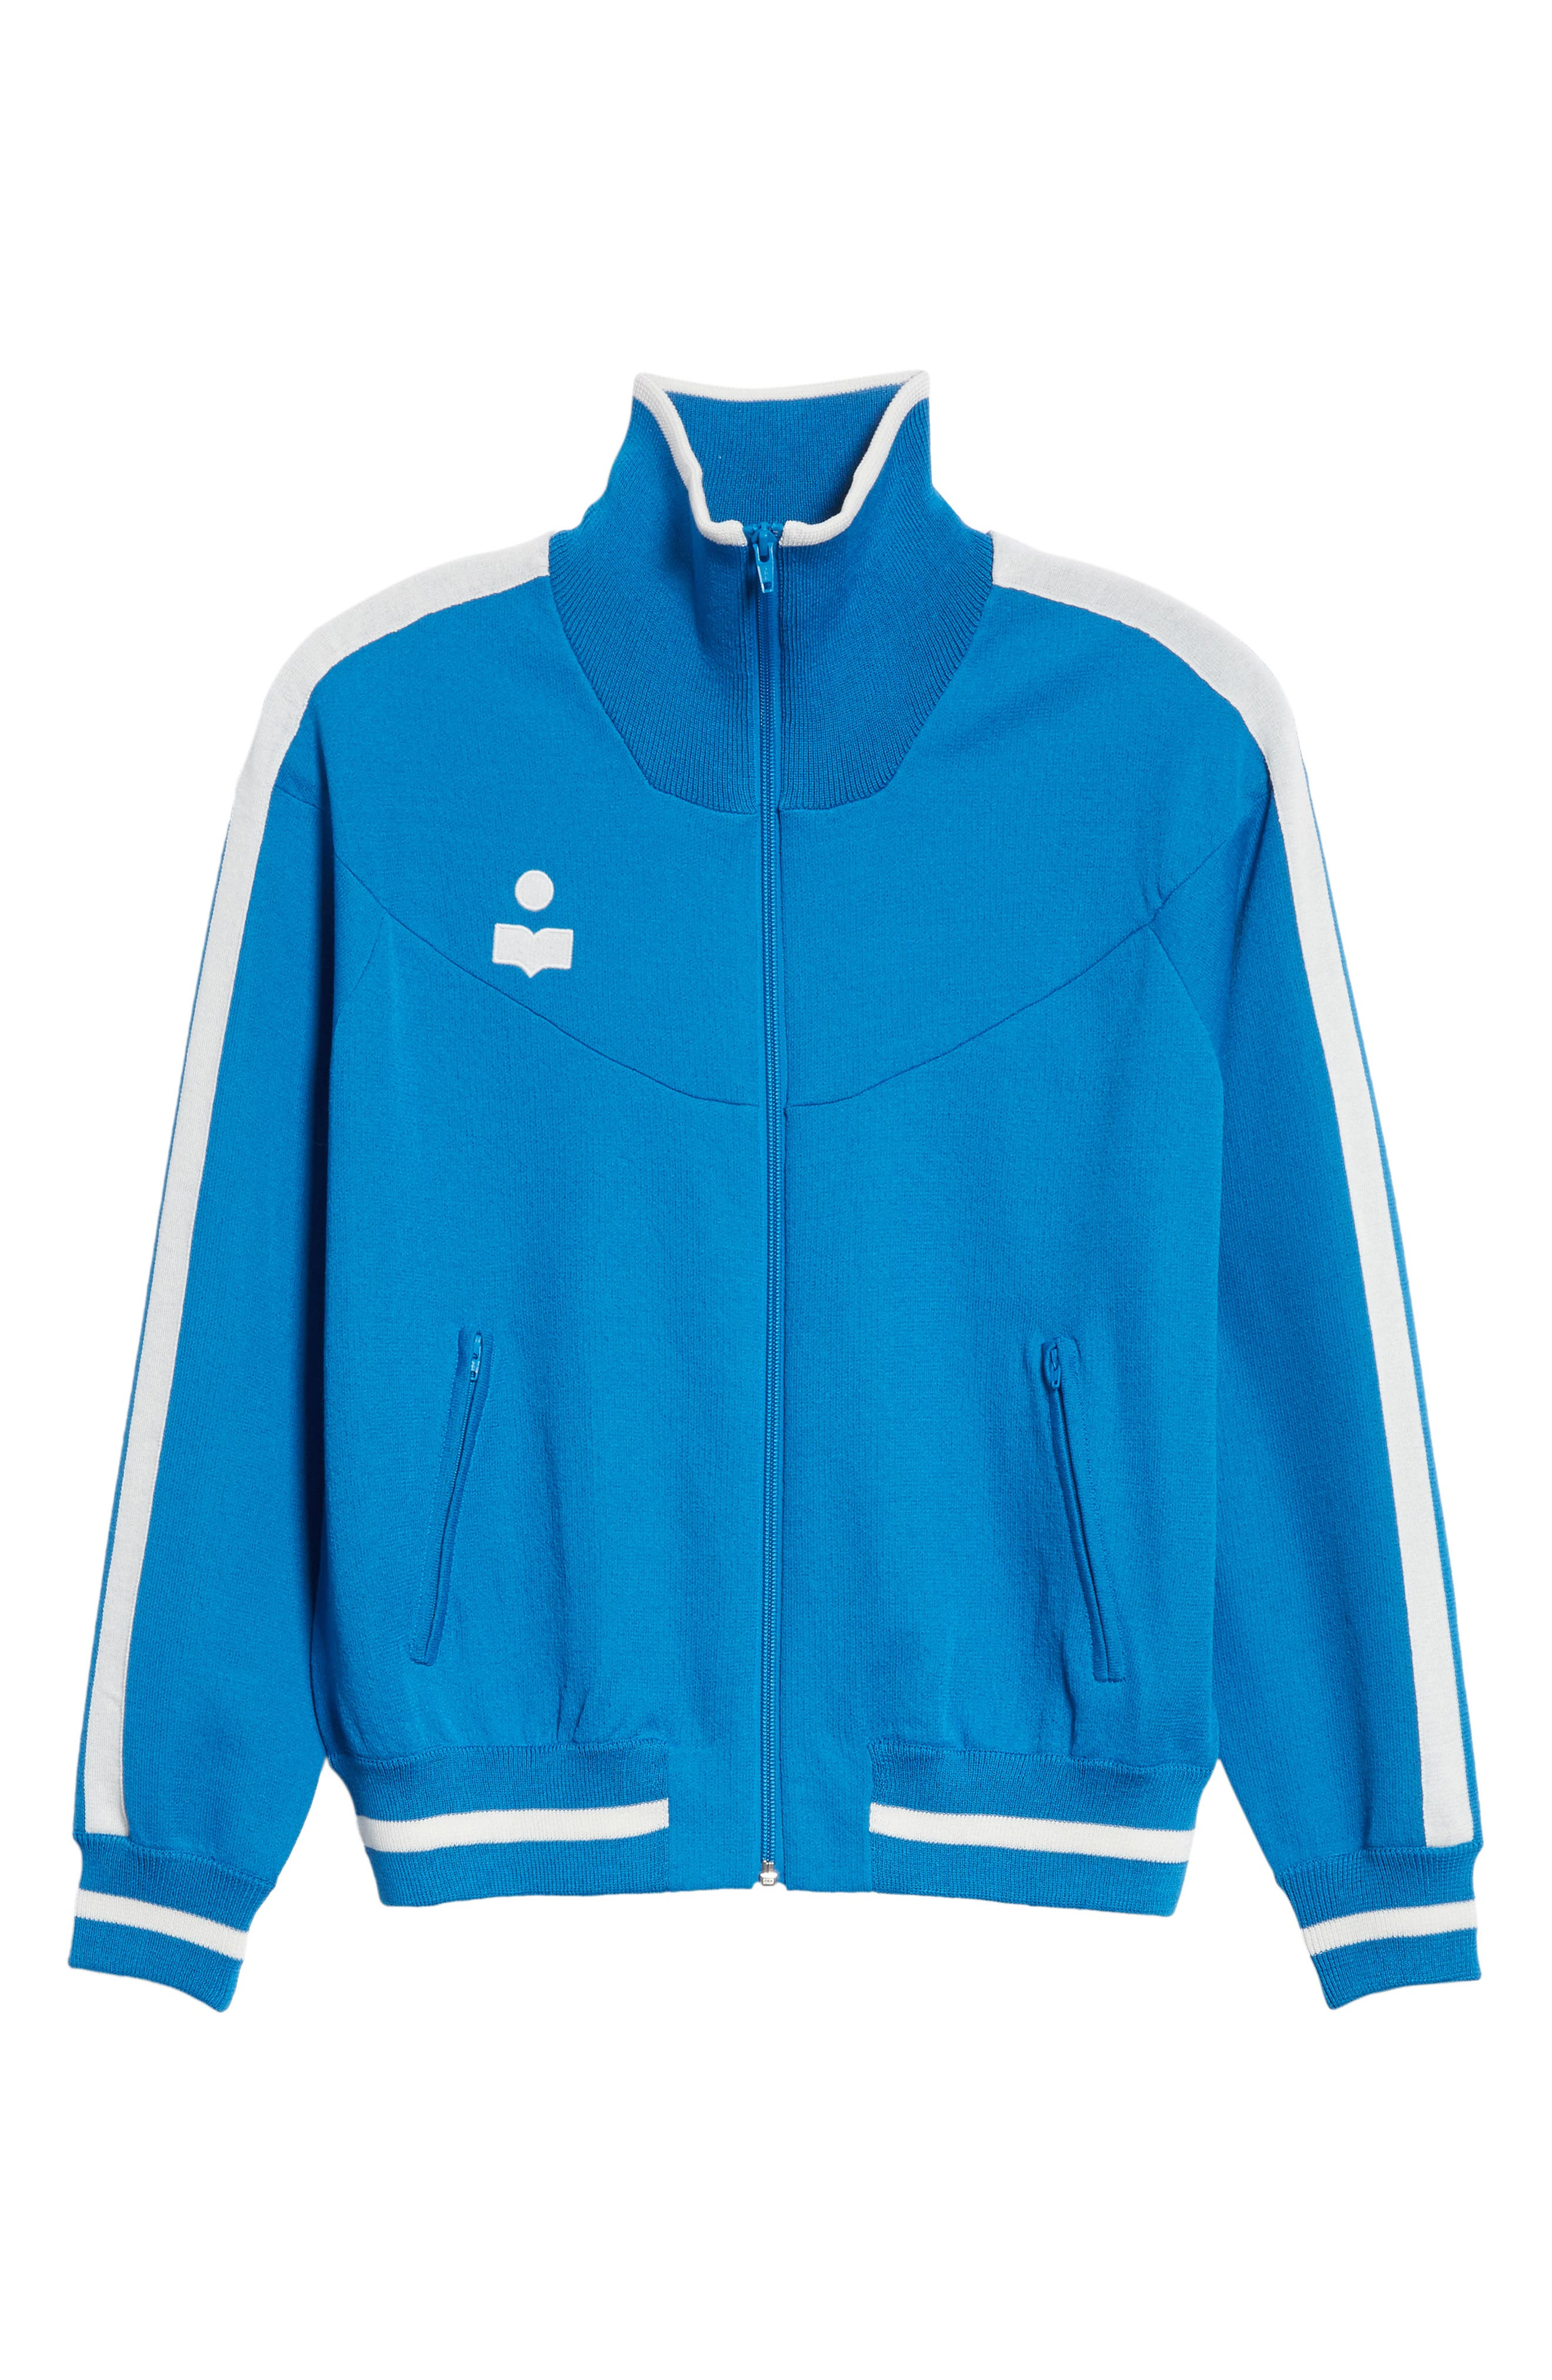 Darcy Track Jacket,                             Alternate thumbnail 6, color,                             400